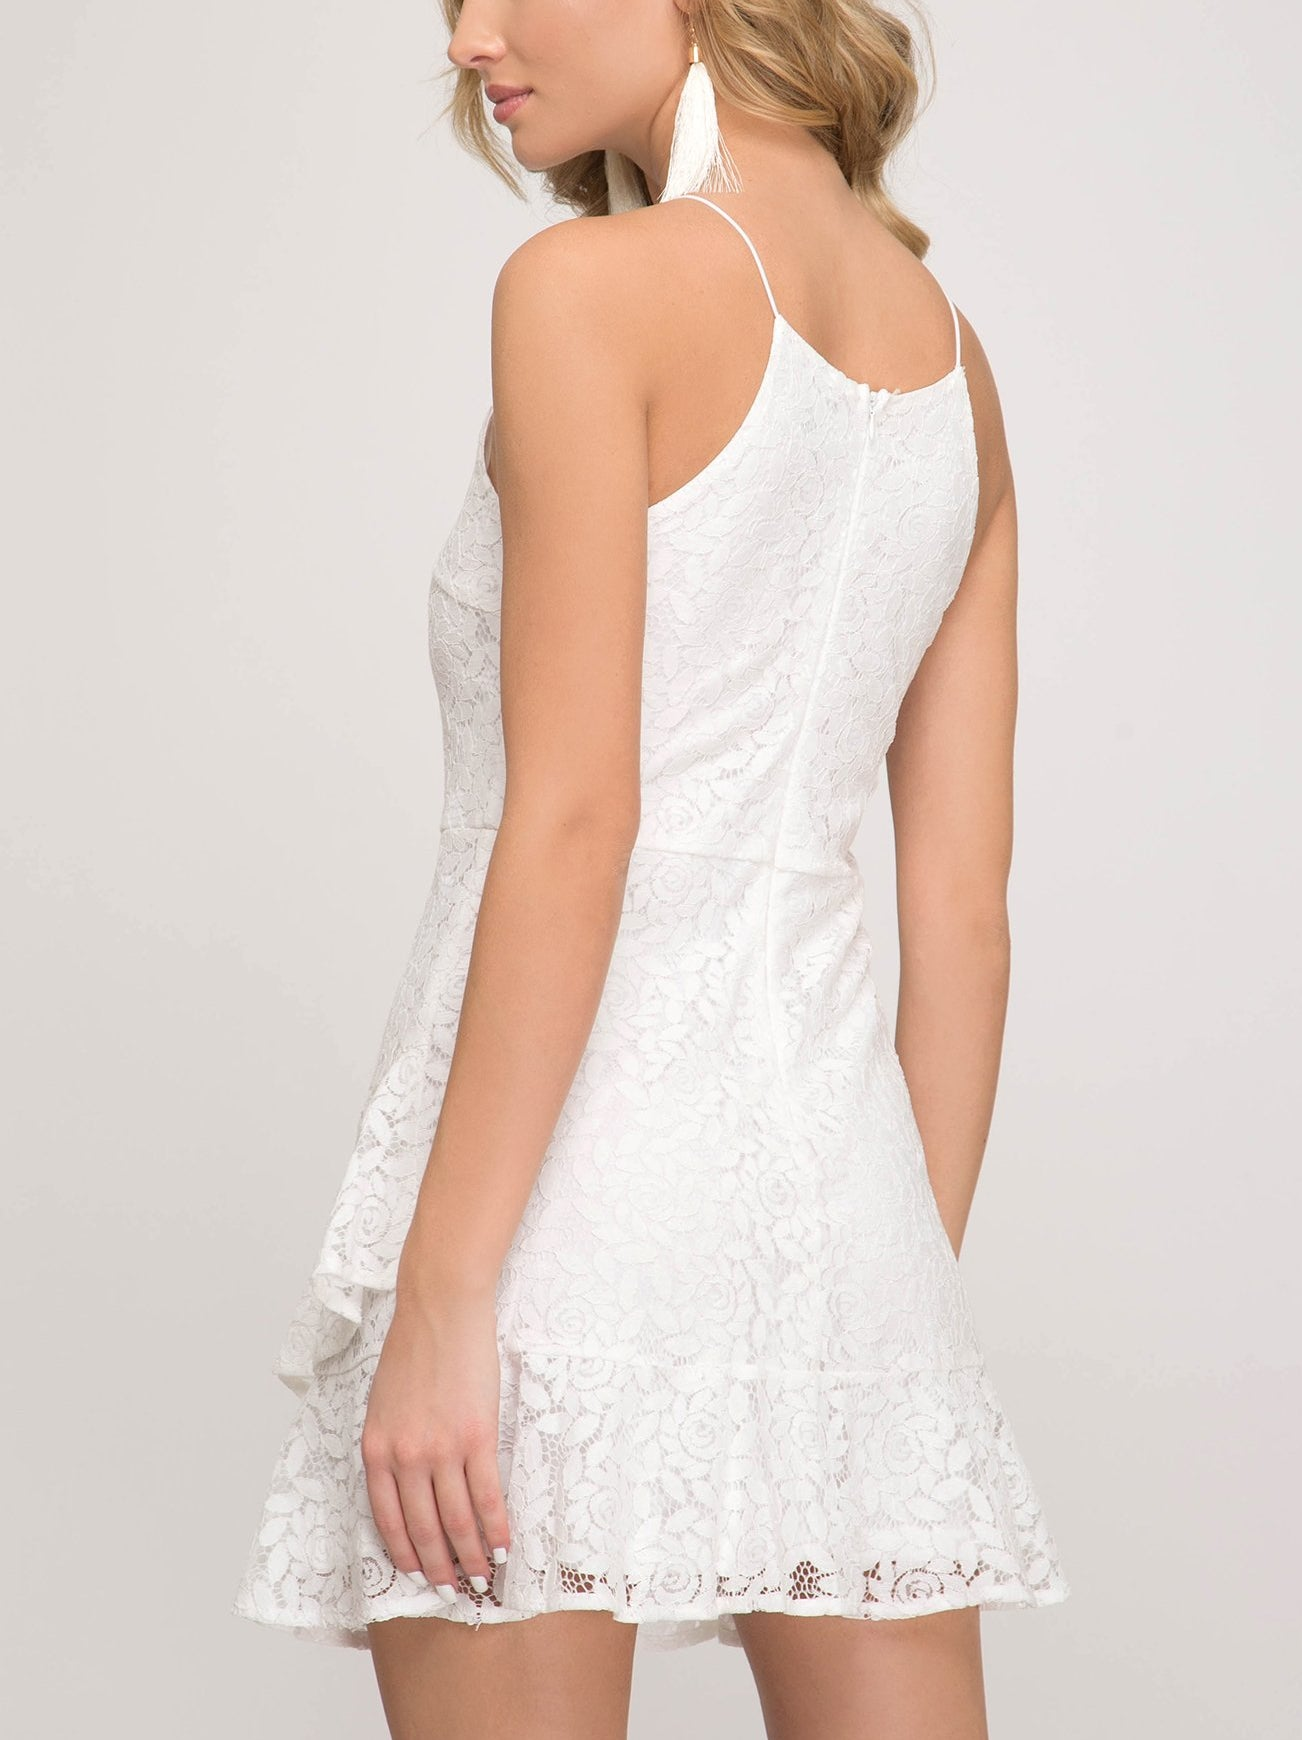 Love at First Sight dress